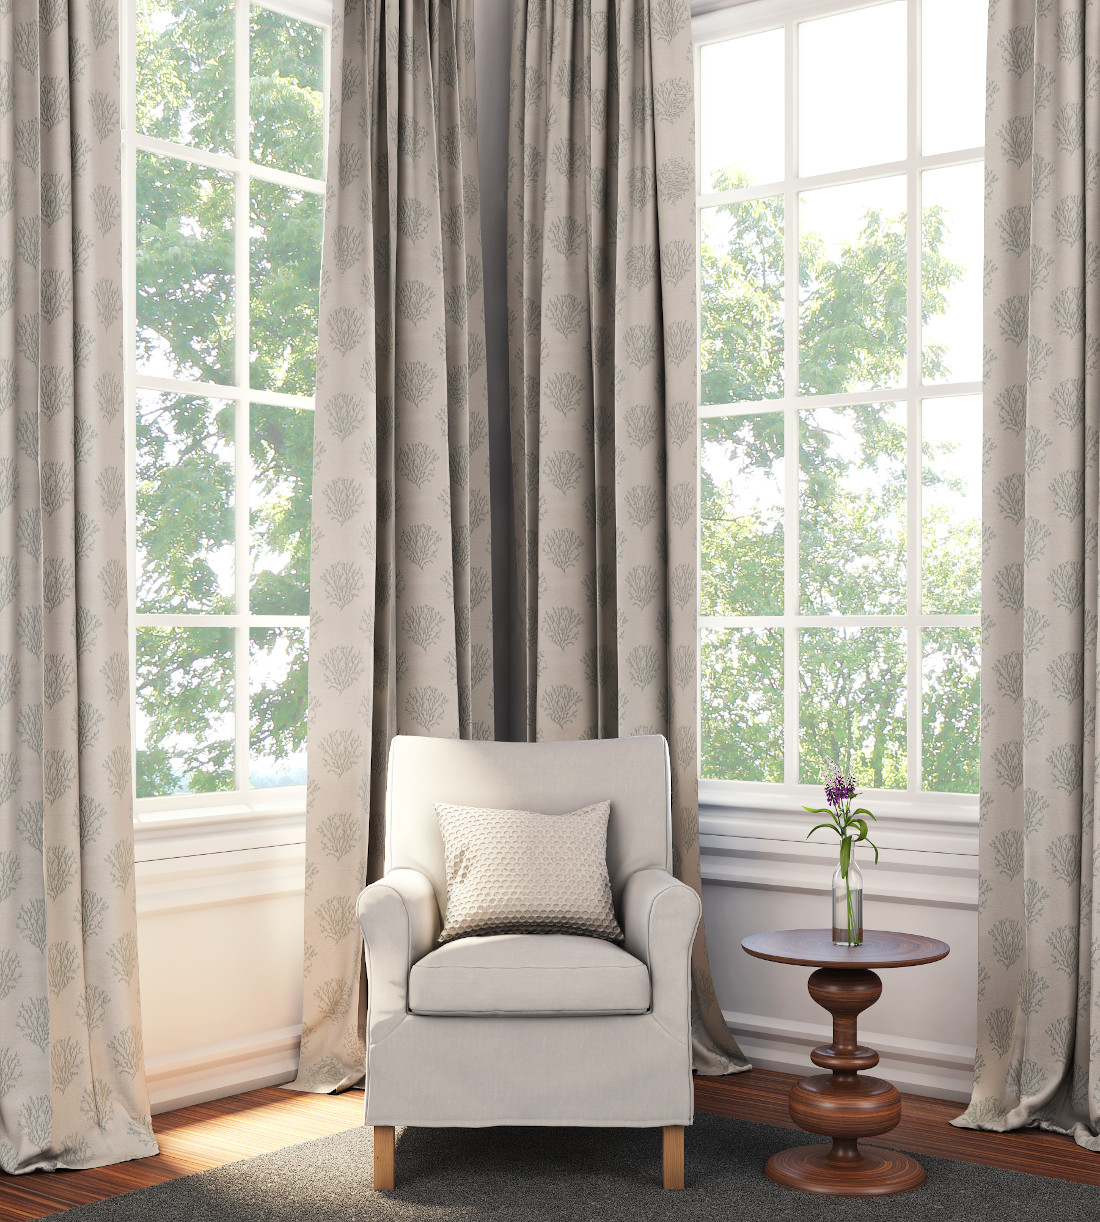 3d visualization residential rendering interior space with curtains and drapes 3921